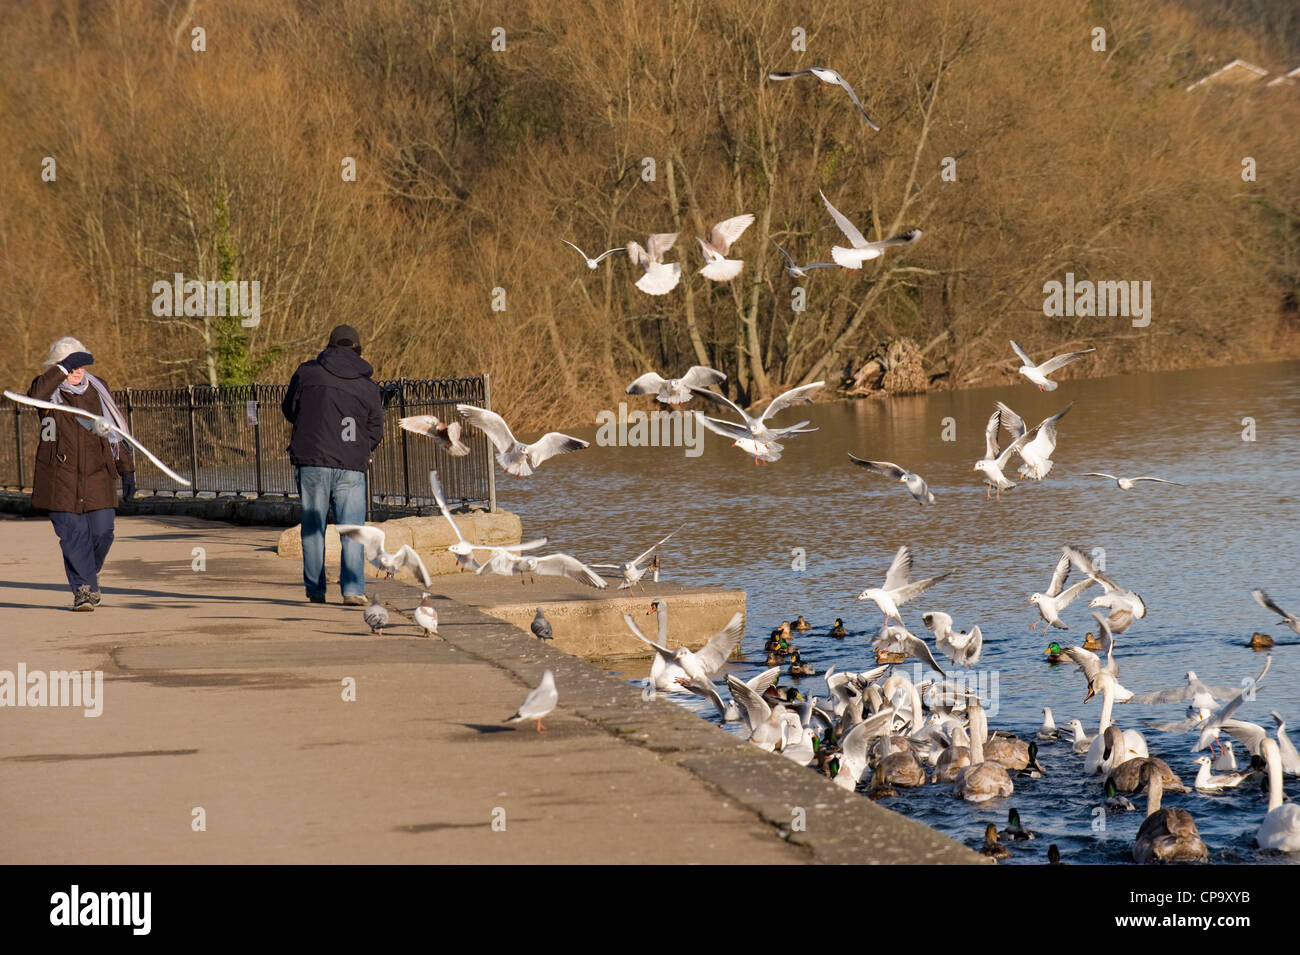 Man feeding birds with gulls, swans & ducks flying, swooping, swimming, flocking round him (woman walks by) - River Stock Photo